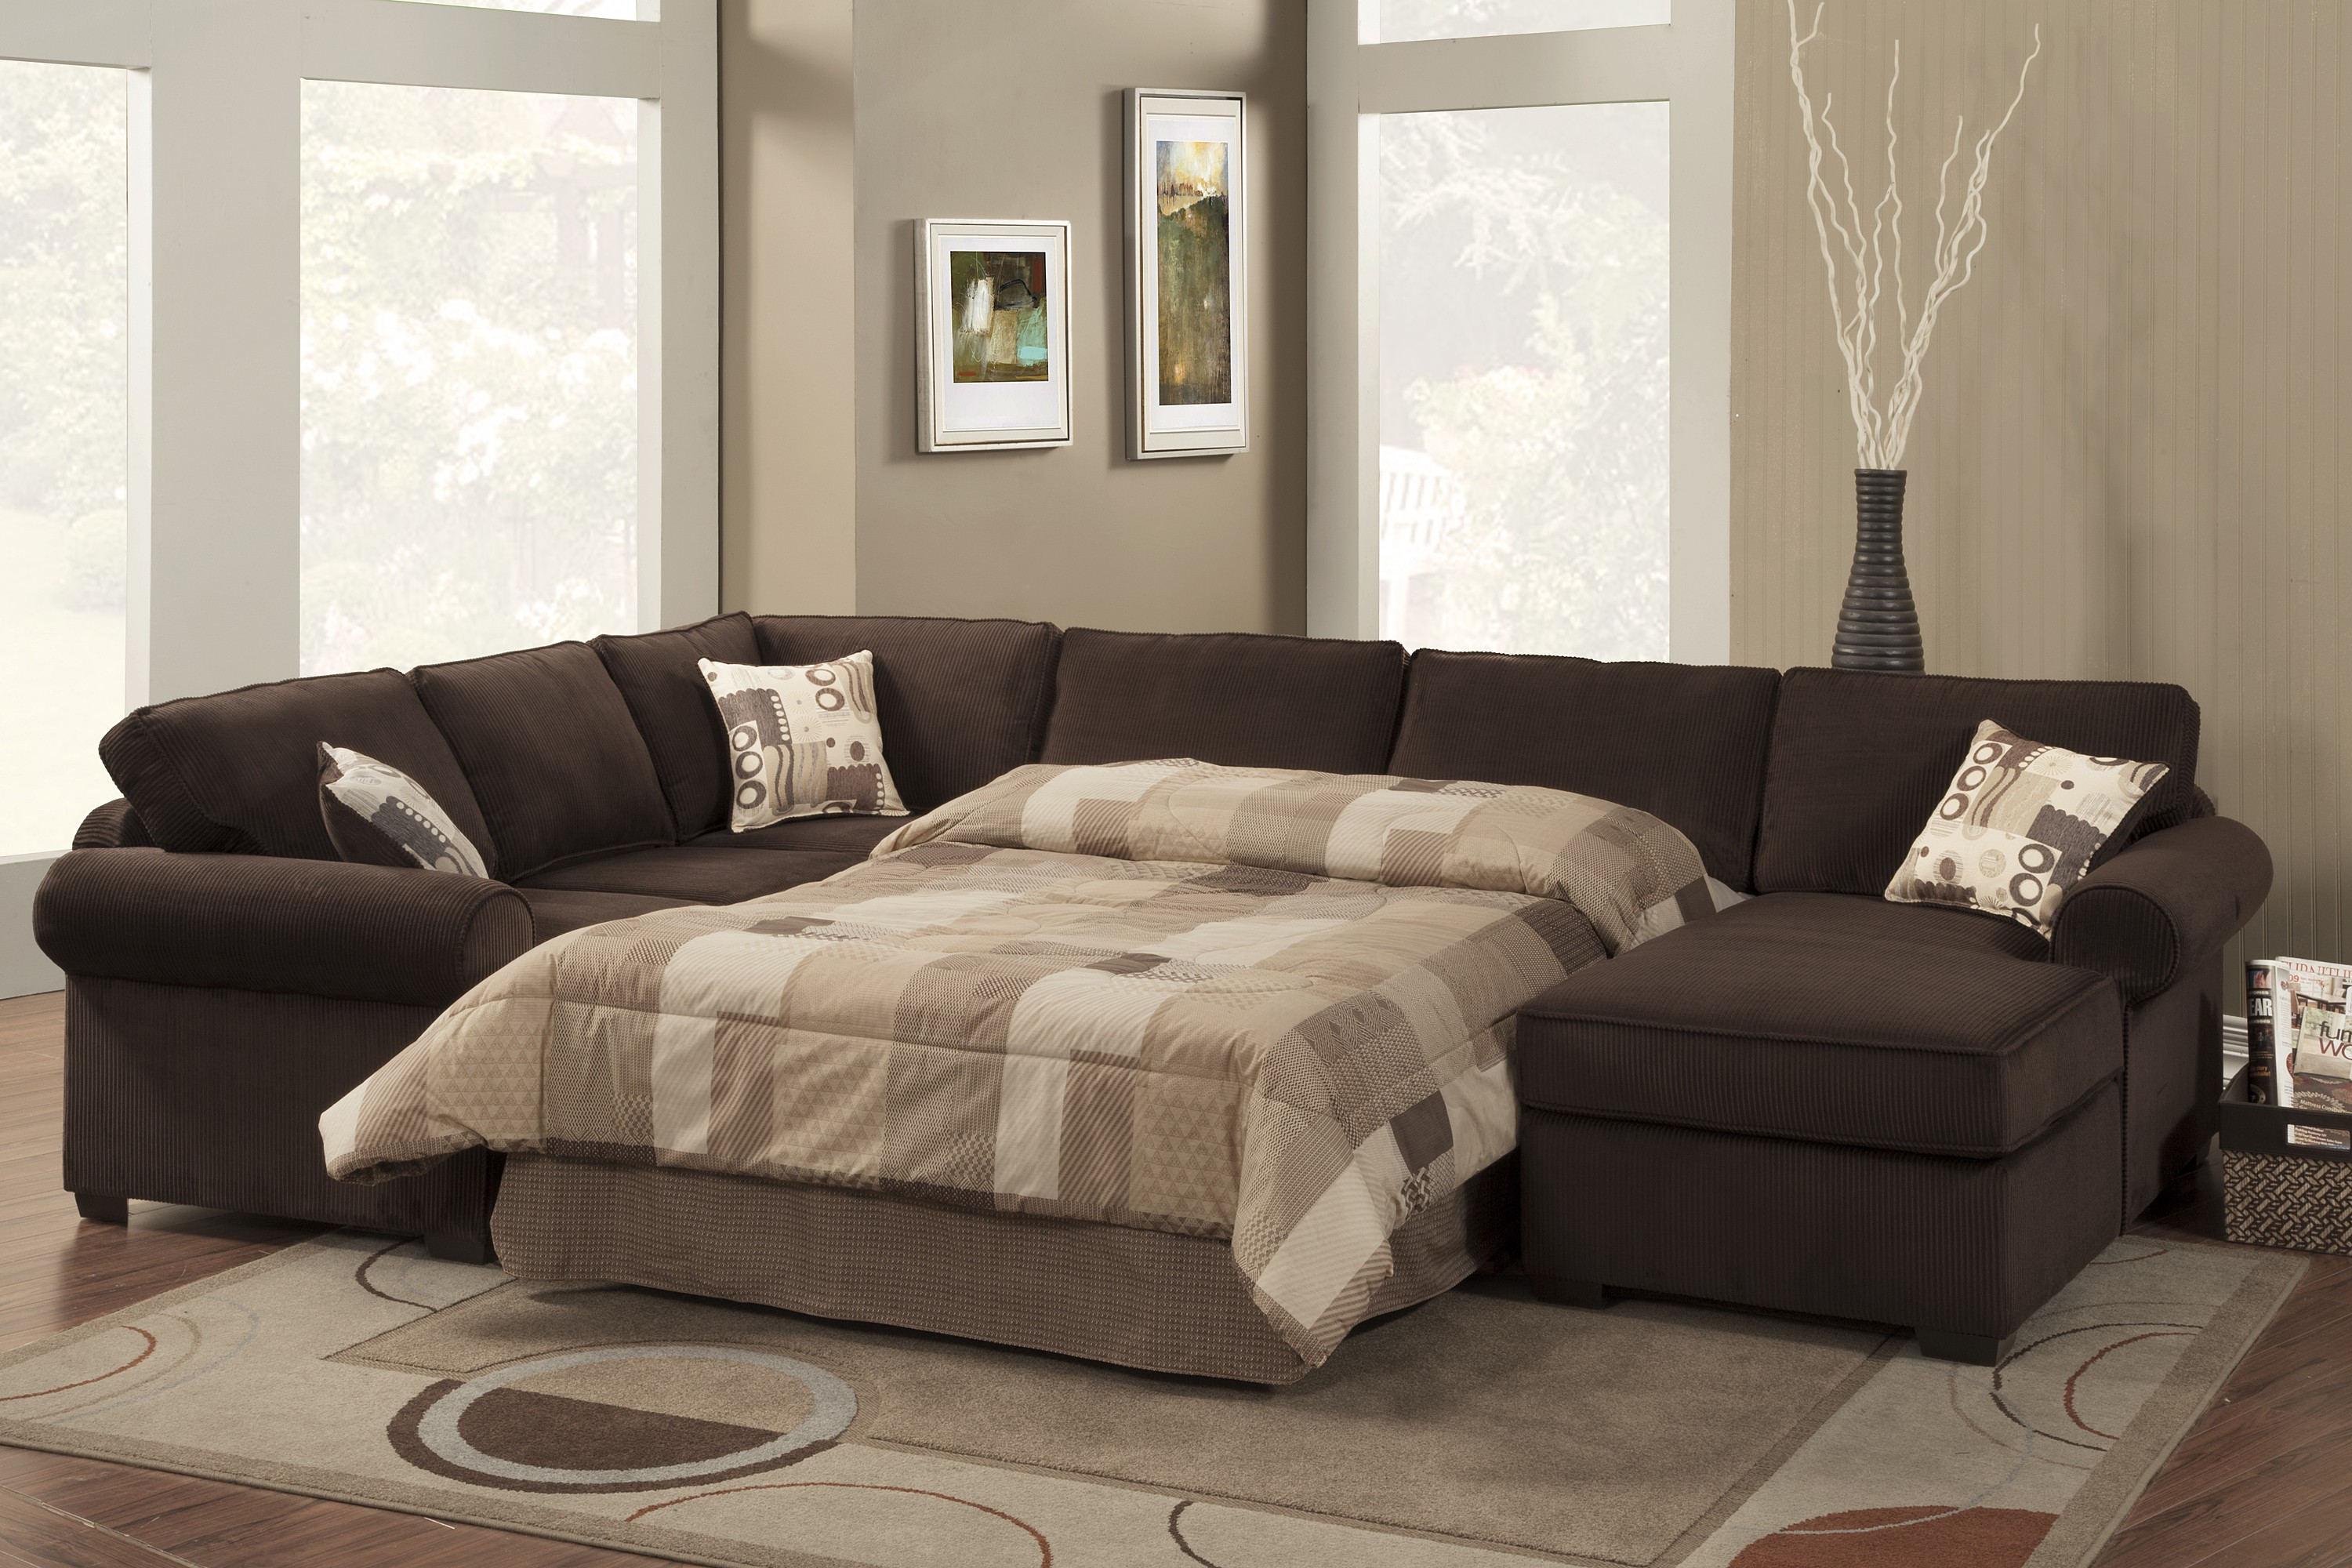 Sectional Sofa Sleepers for Better Sleep Quality and ...